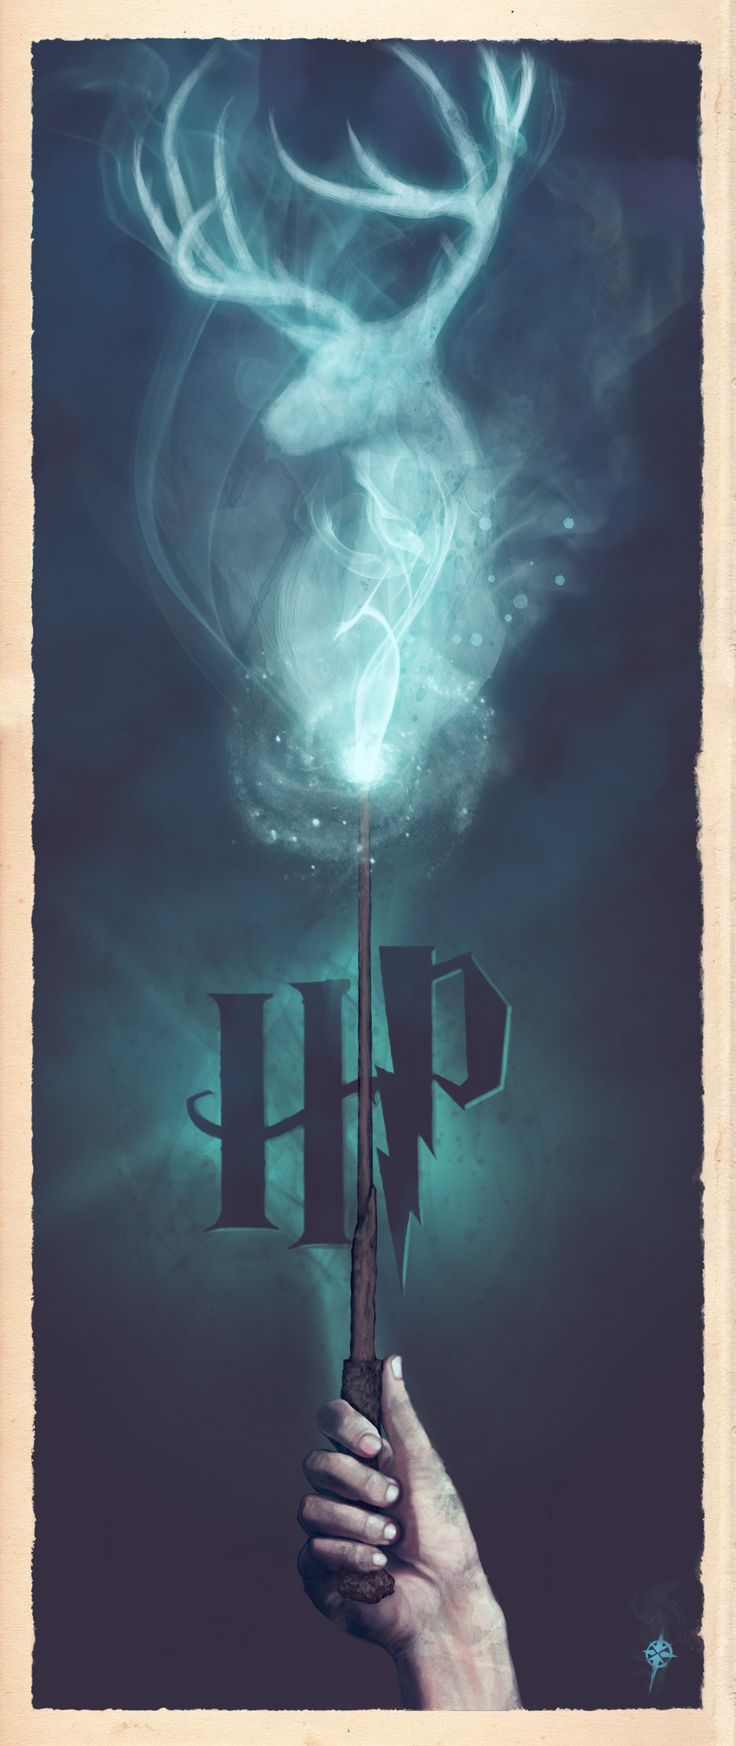 Harry's Stag Patronus (Expecto Patronum) by Ajay Naran would be cute to print as a bookmark